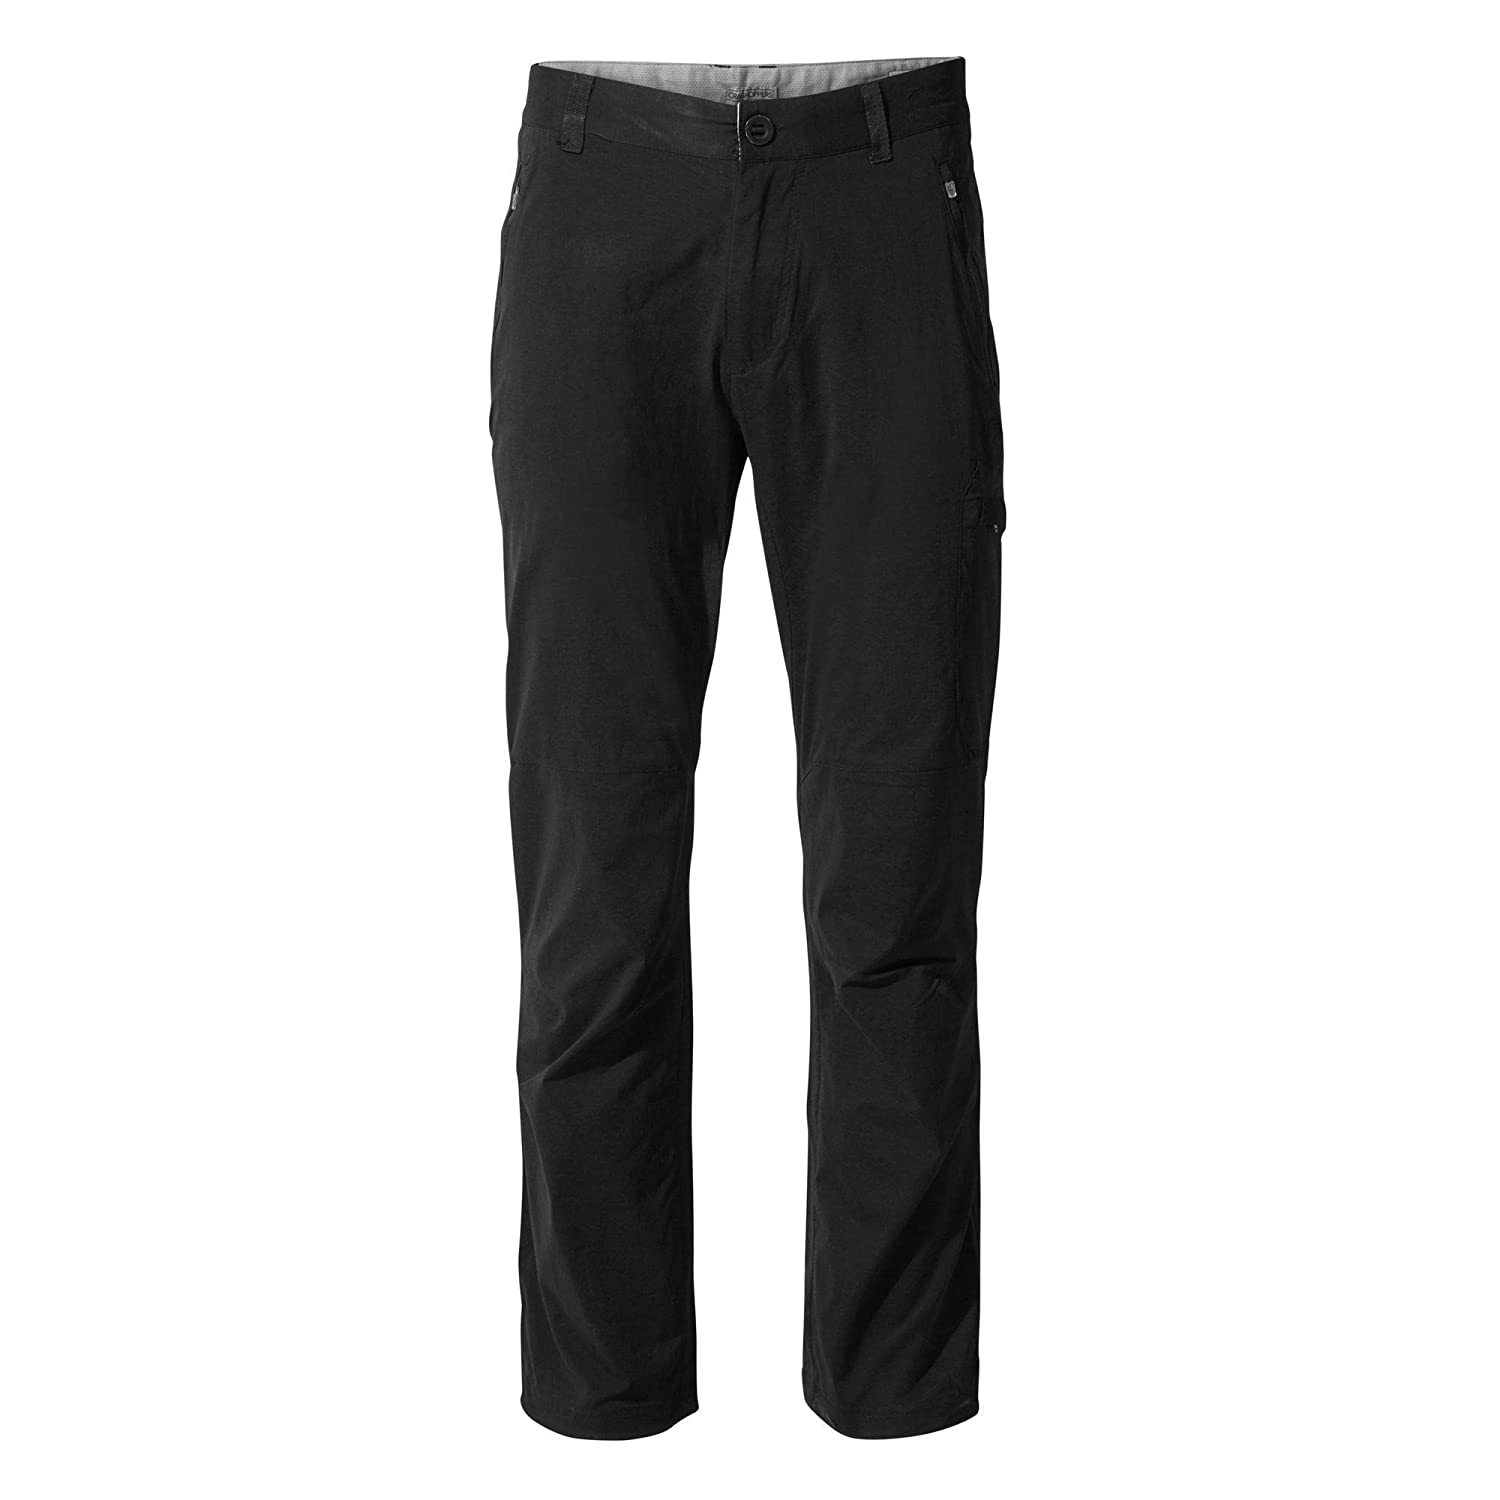 schwarz 42 Long Leg Craghoppers NosiLife Pro II Trousers Men - Regular - Reisehose